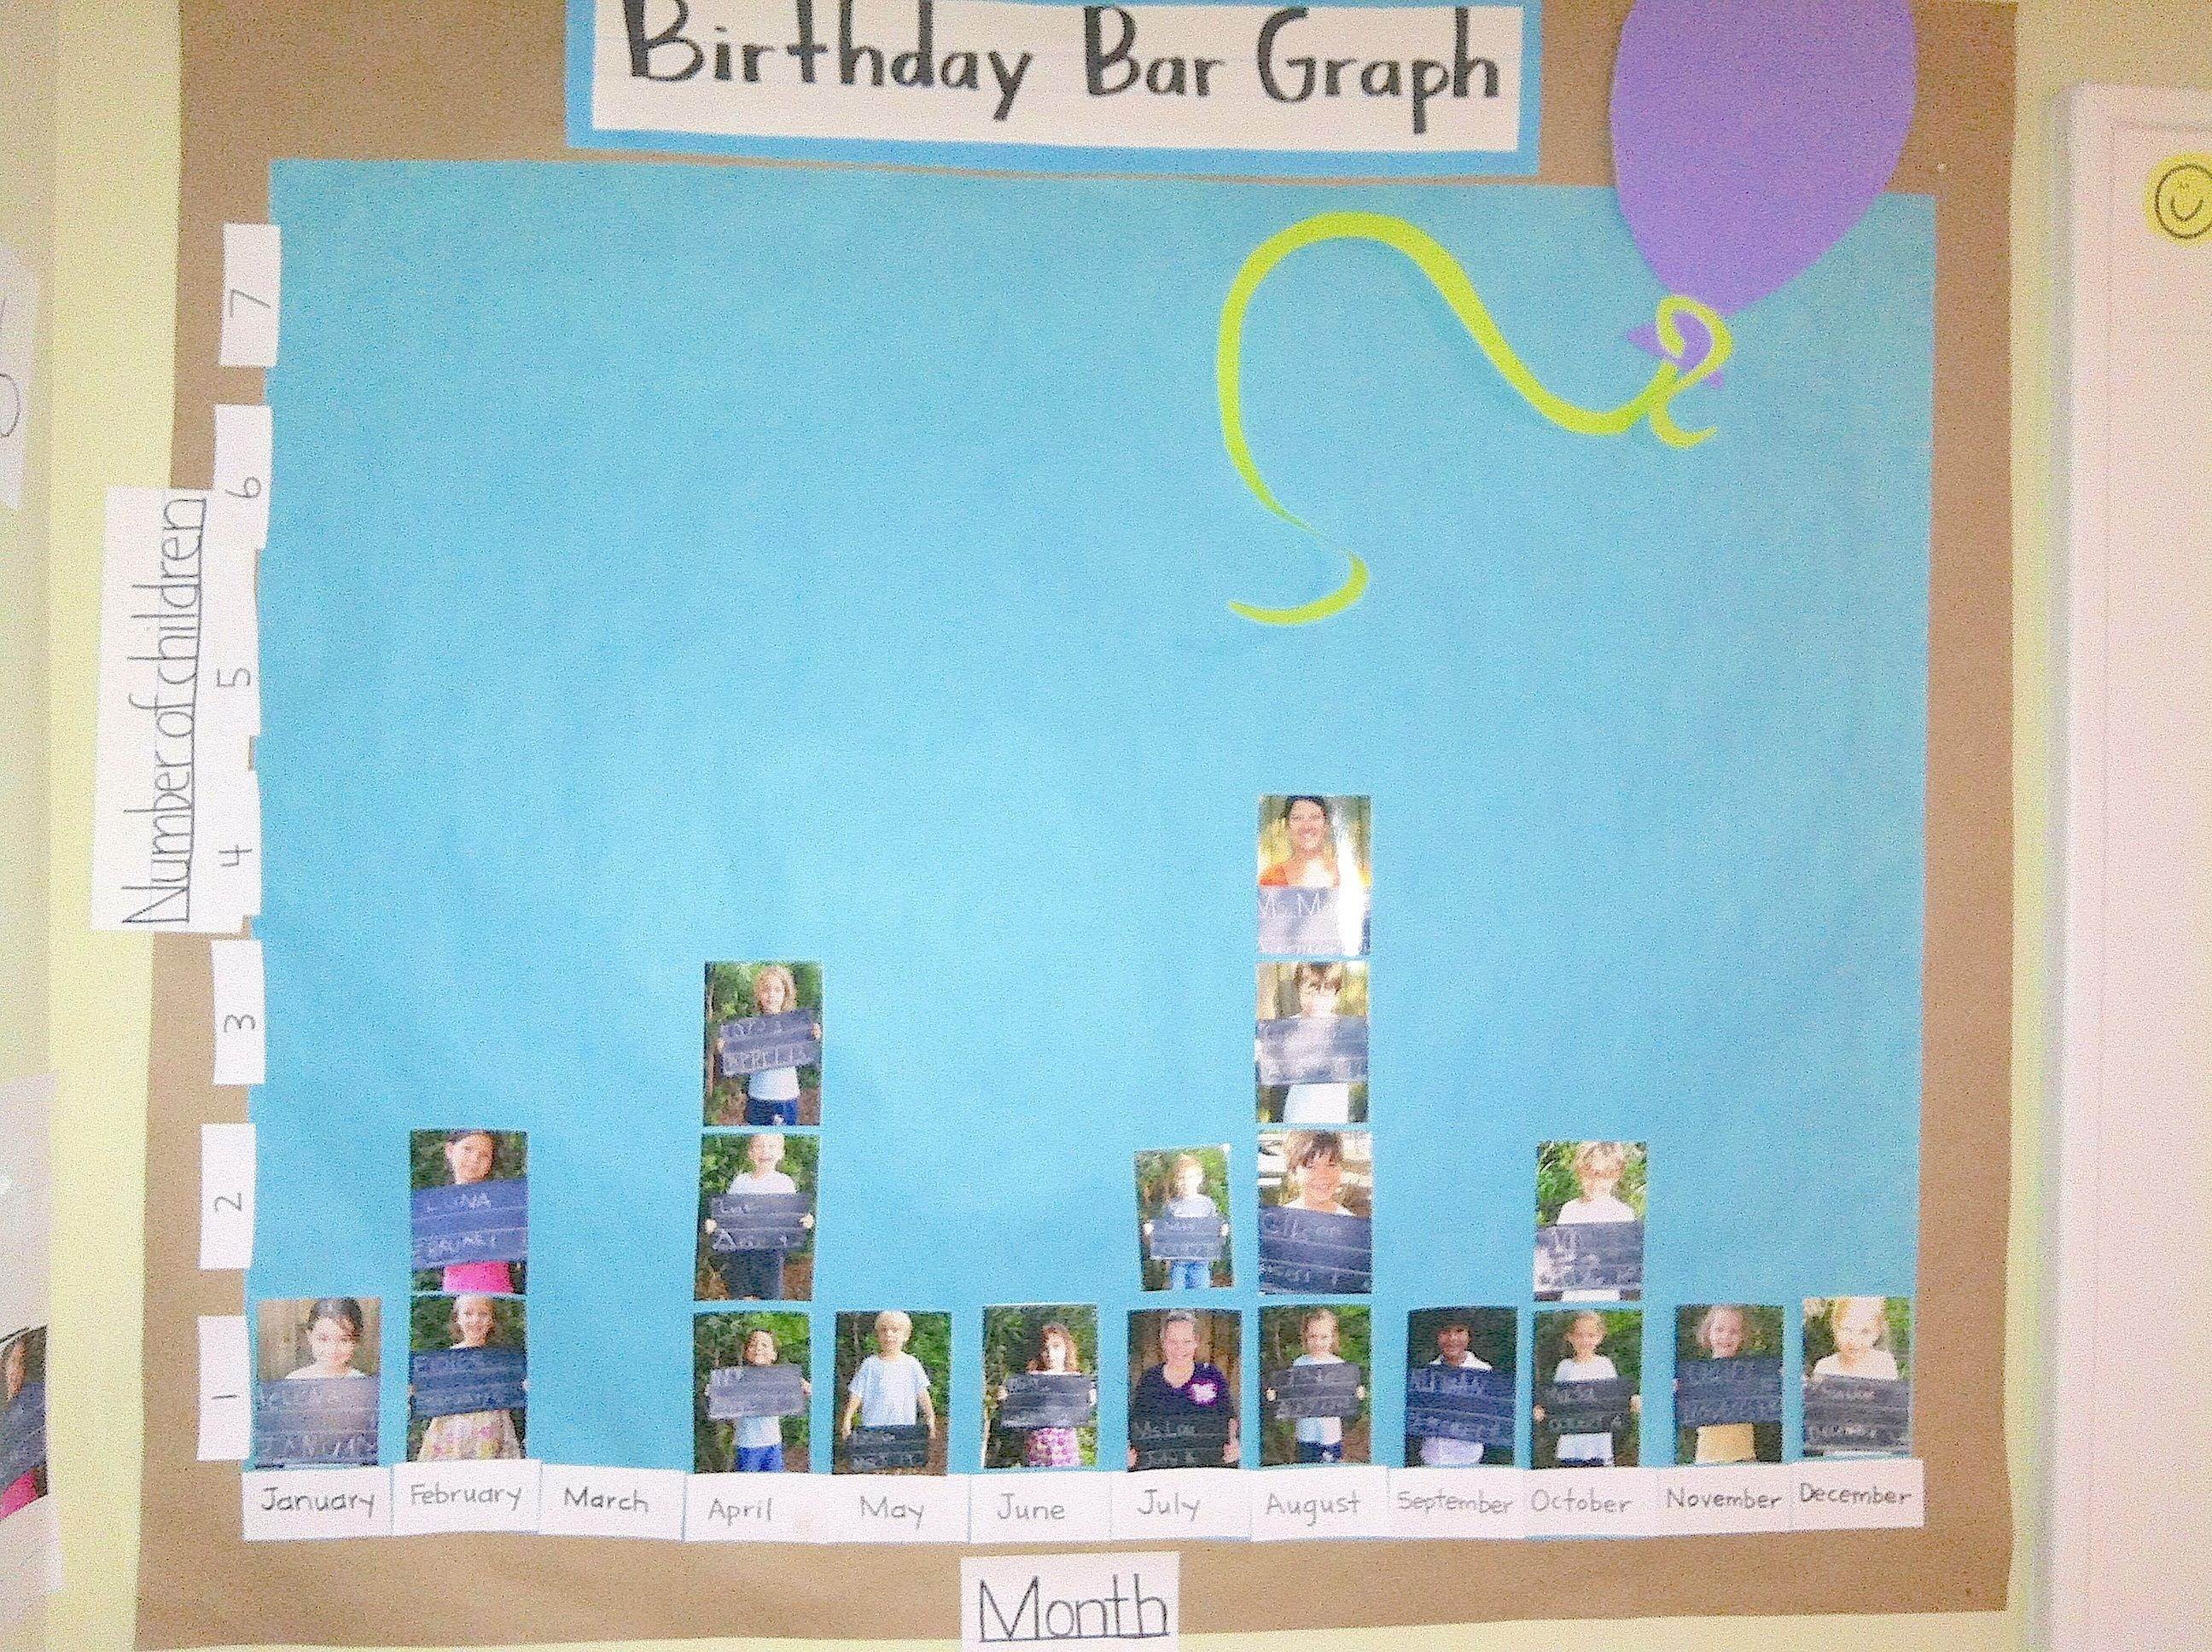 Birthday Bar Graph Take Pictures Of Students Holding A